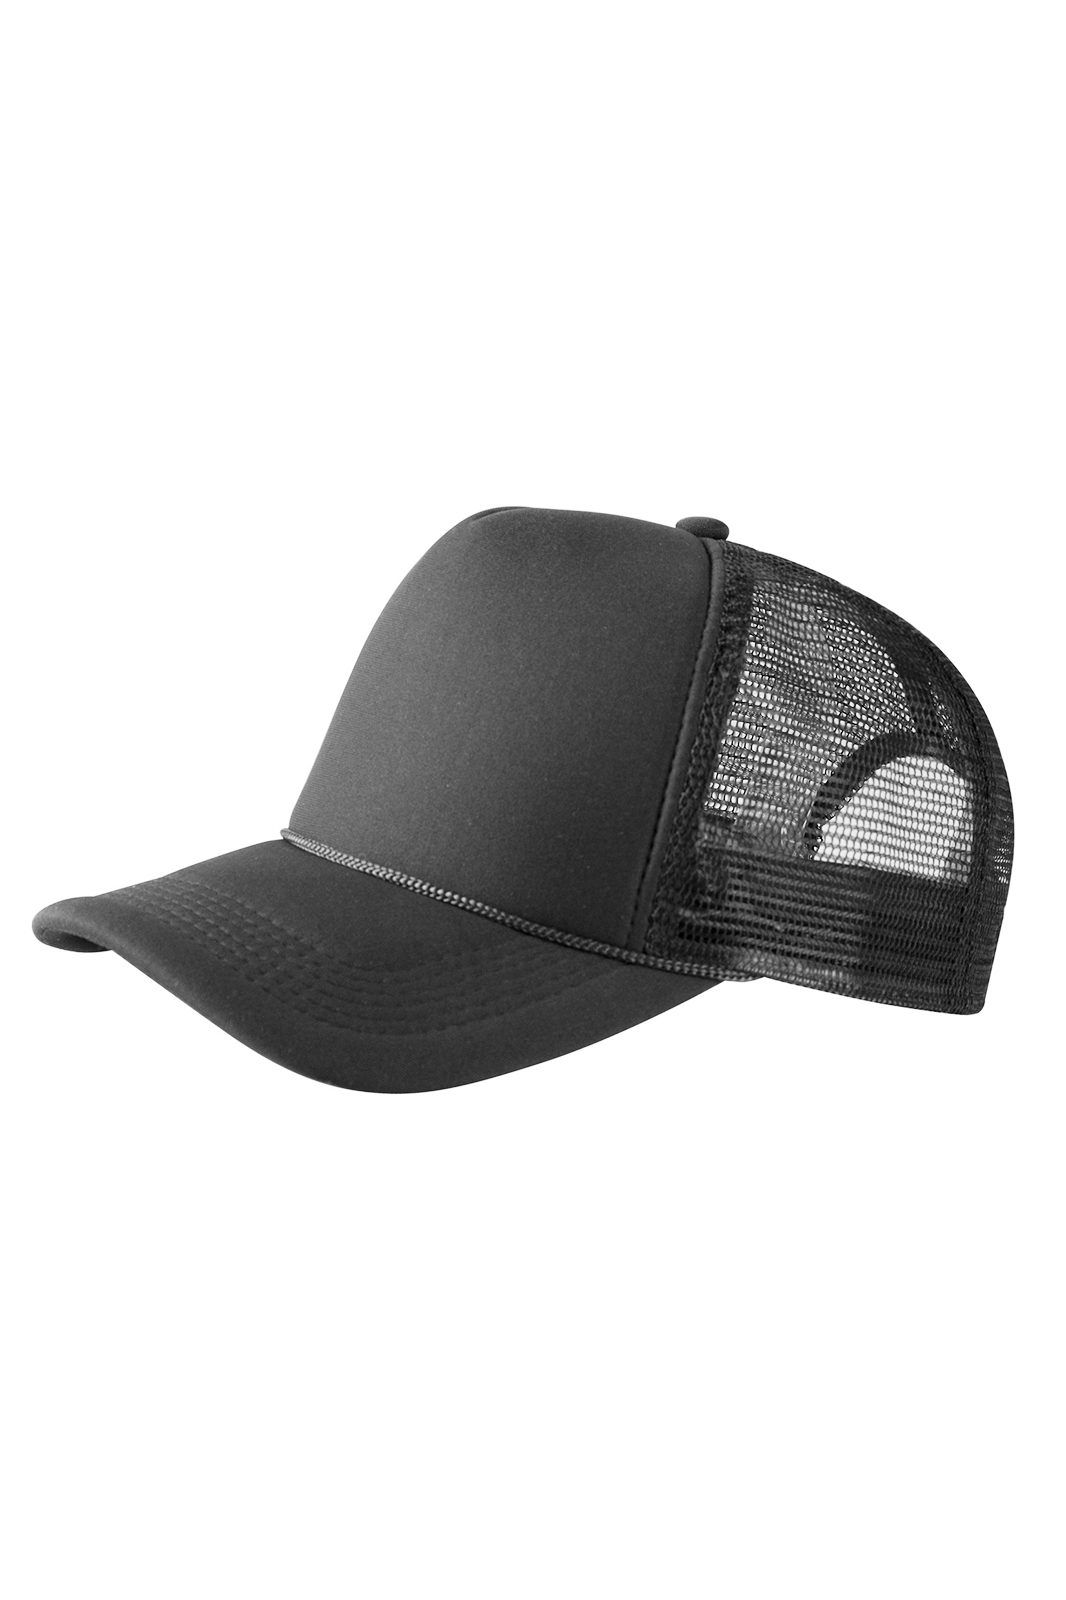 Baseball Cap Trucker High Profile Black